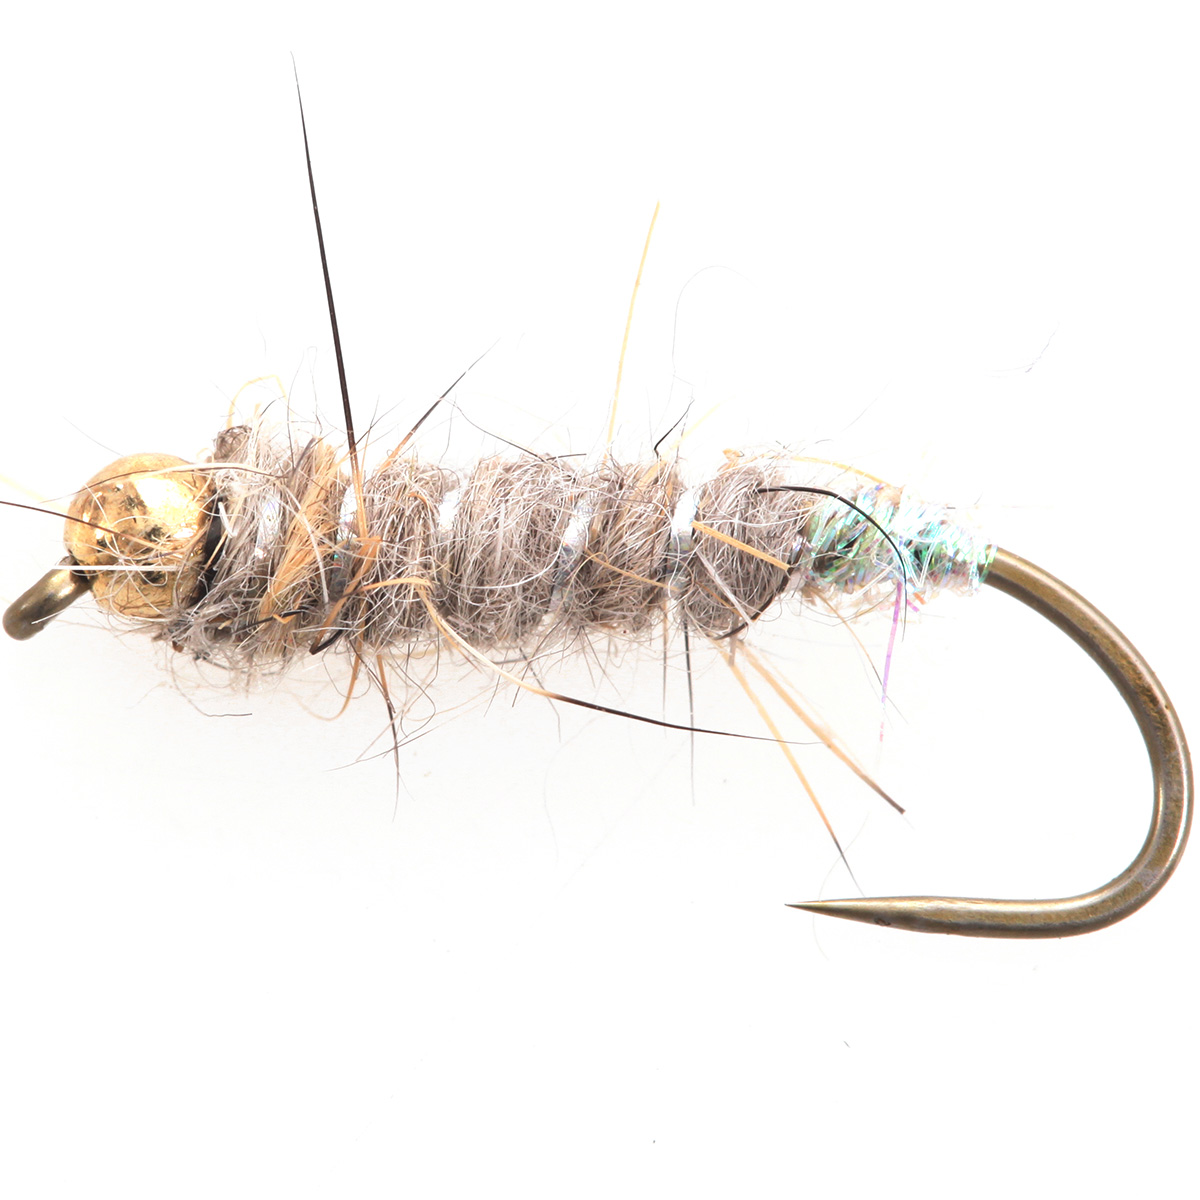 Tungsten bh caddis case nymph tungsten beads nymphs for Ebay fly fishing